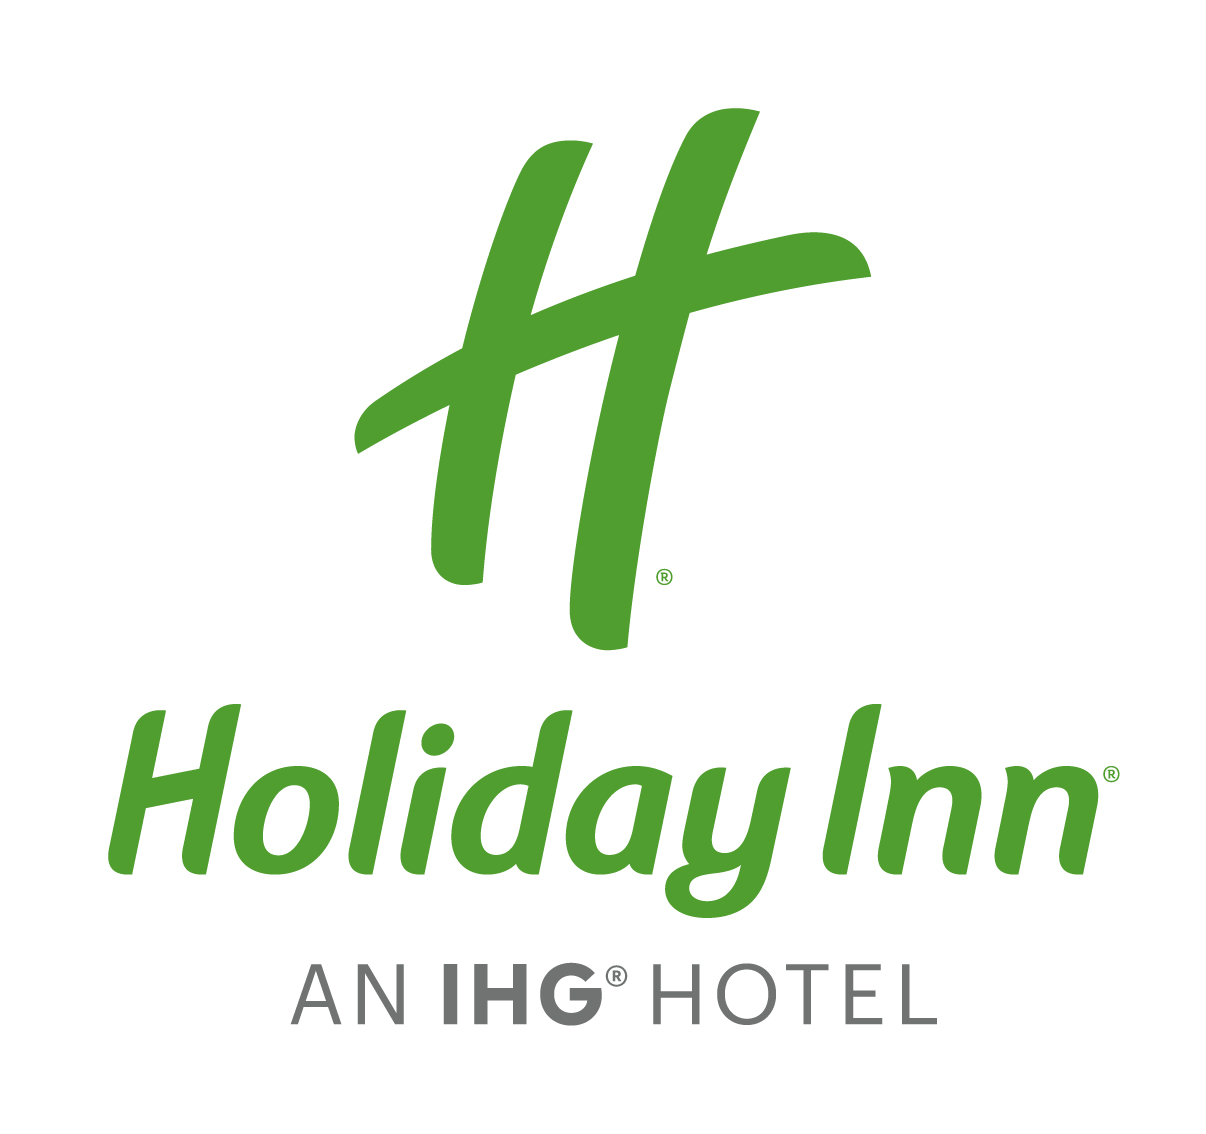 Holiday Inn IHG